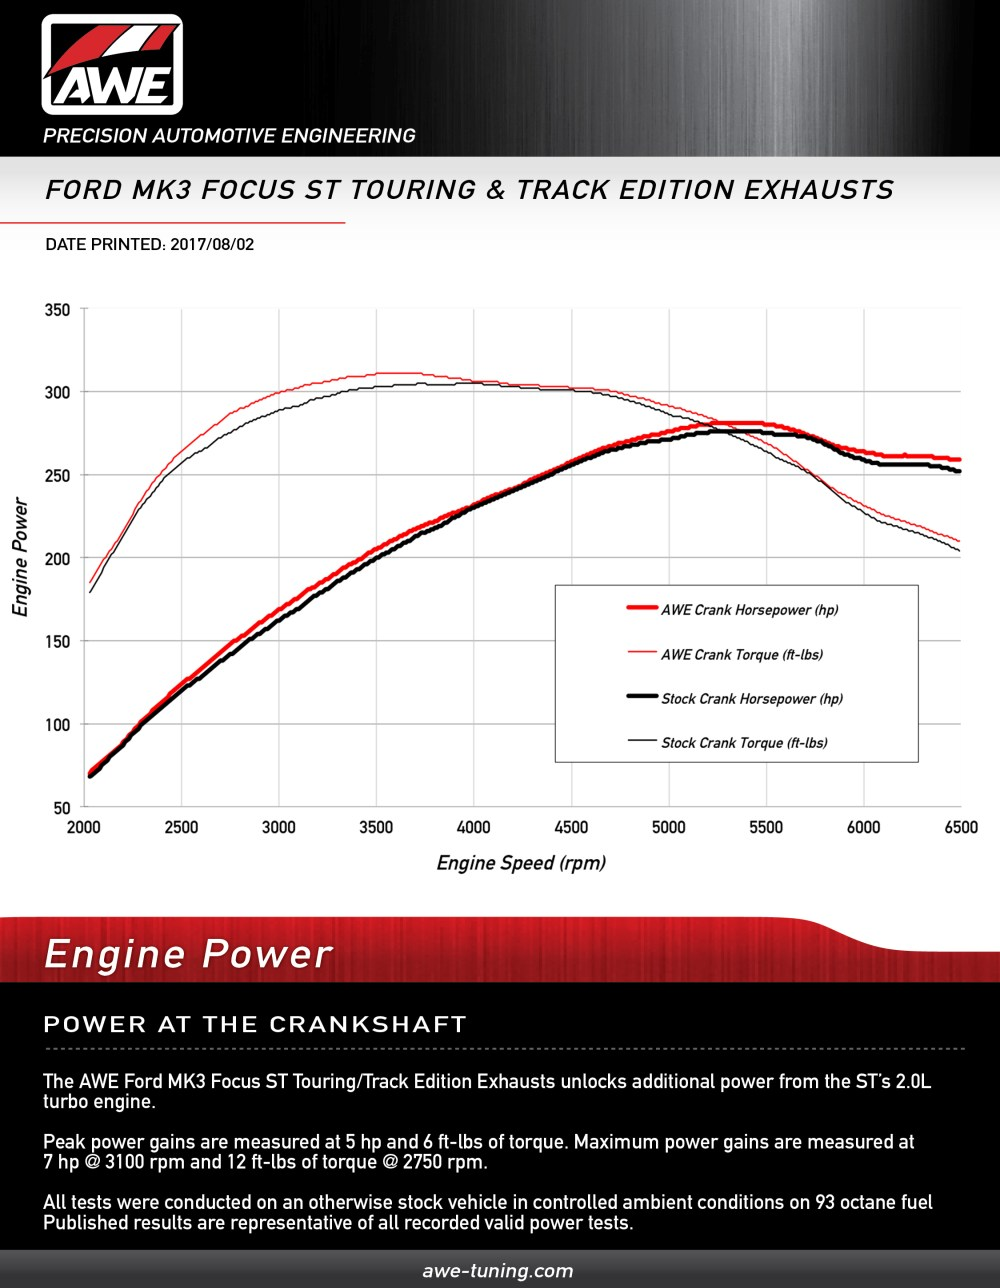 medium resolution of crank horsepower gains for the awe focus st track touring edition exhaust systems